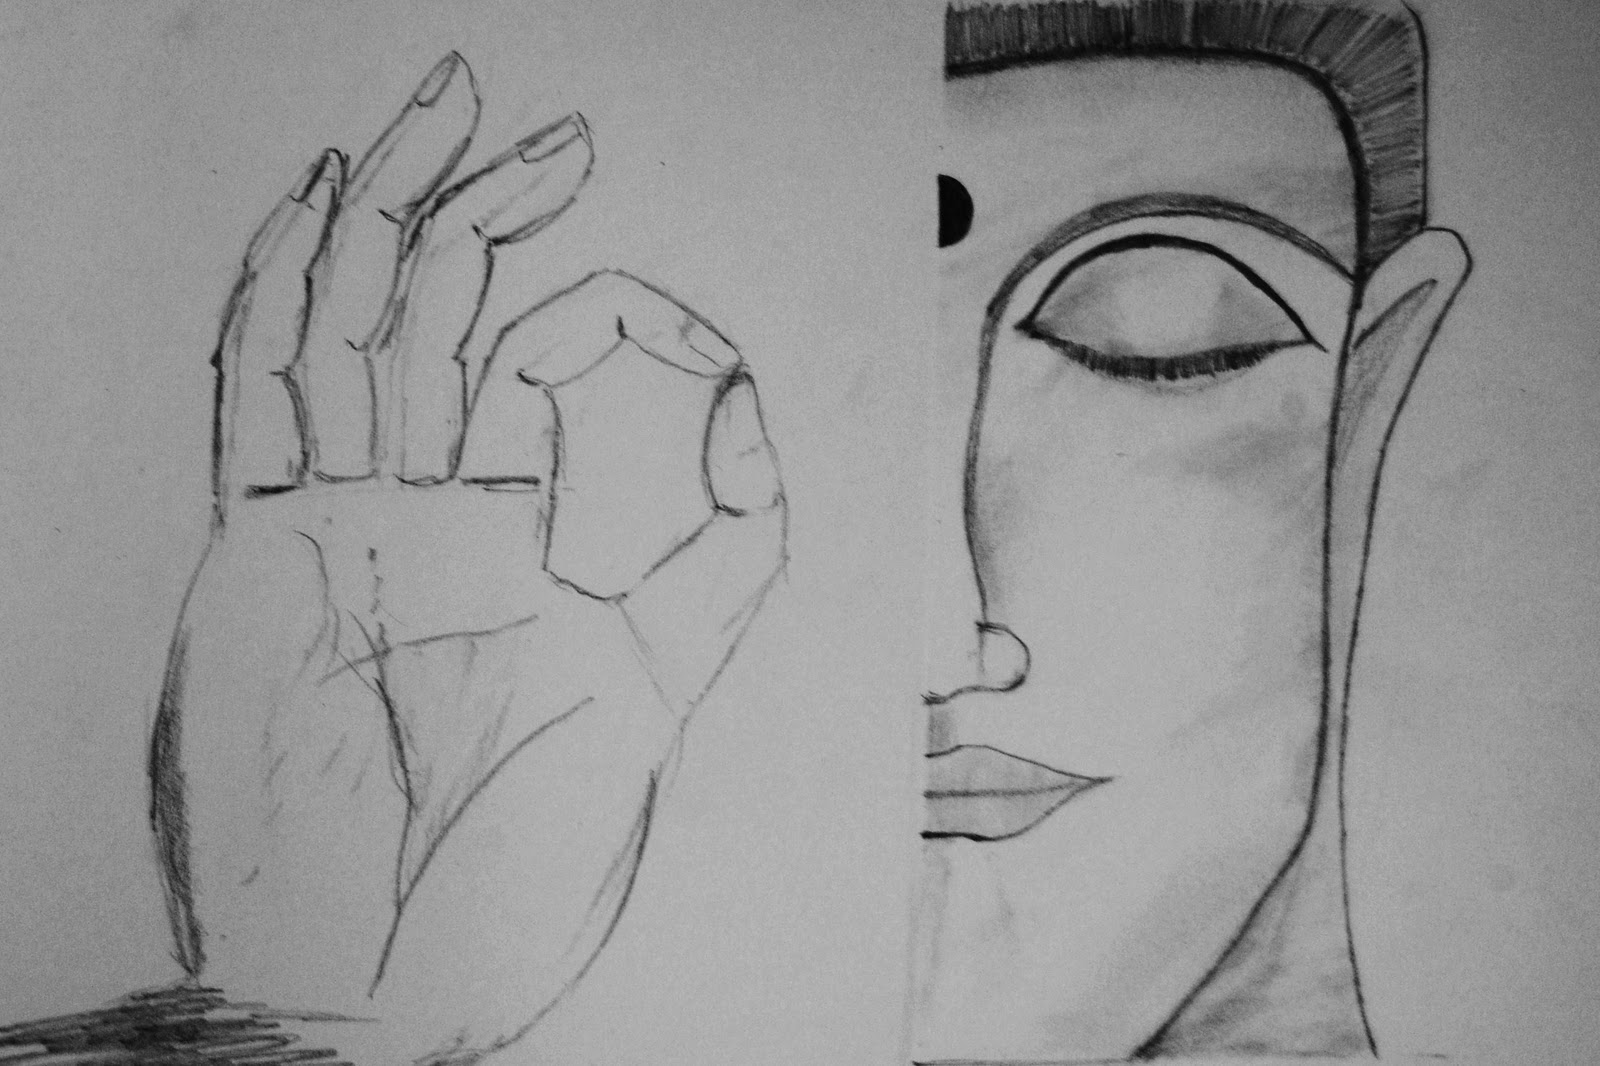 The link to the previous sketch buddha pencil sketch